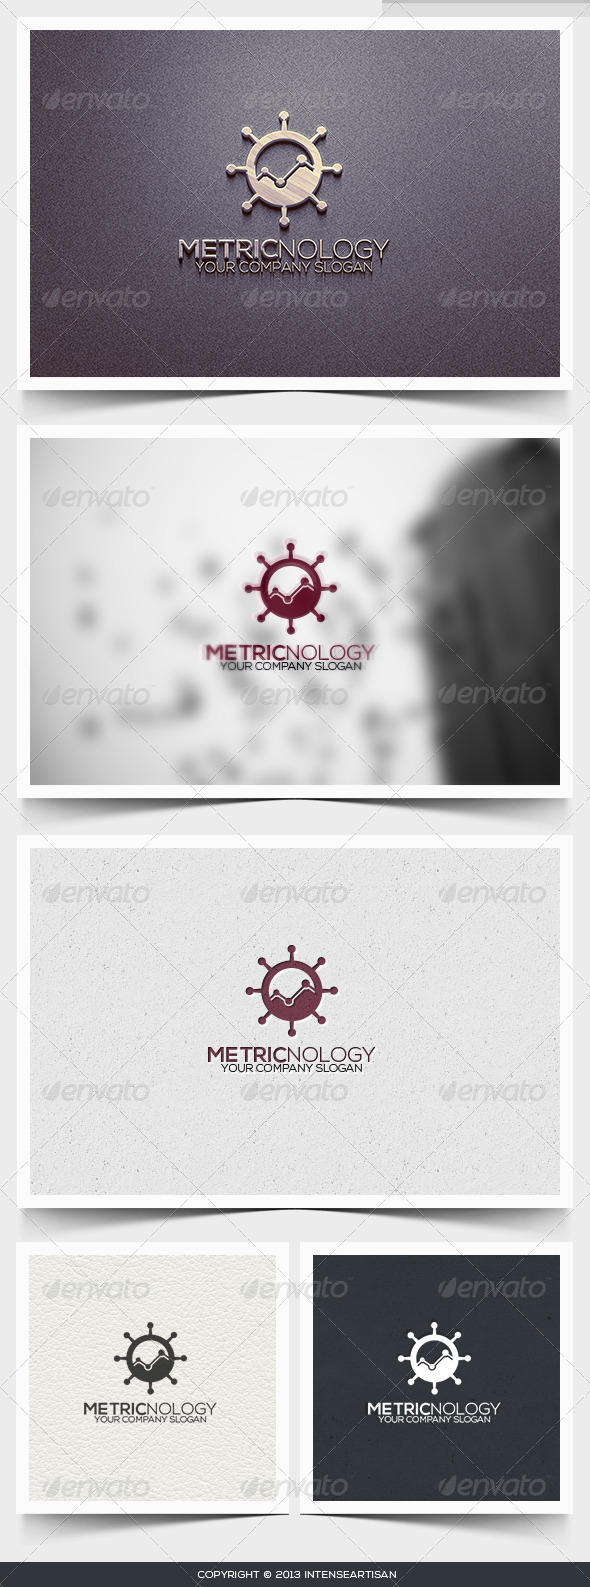 GraphicRiver Metricnology Logo Template 6396733